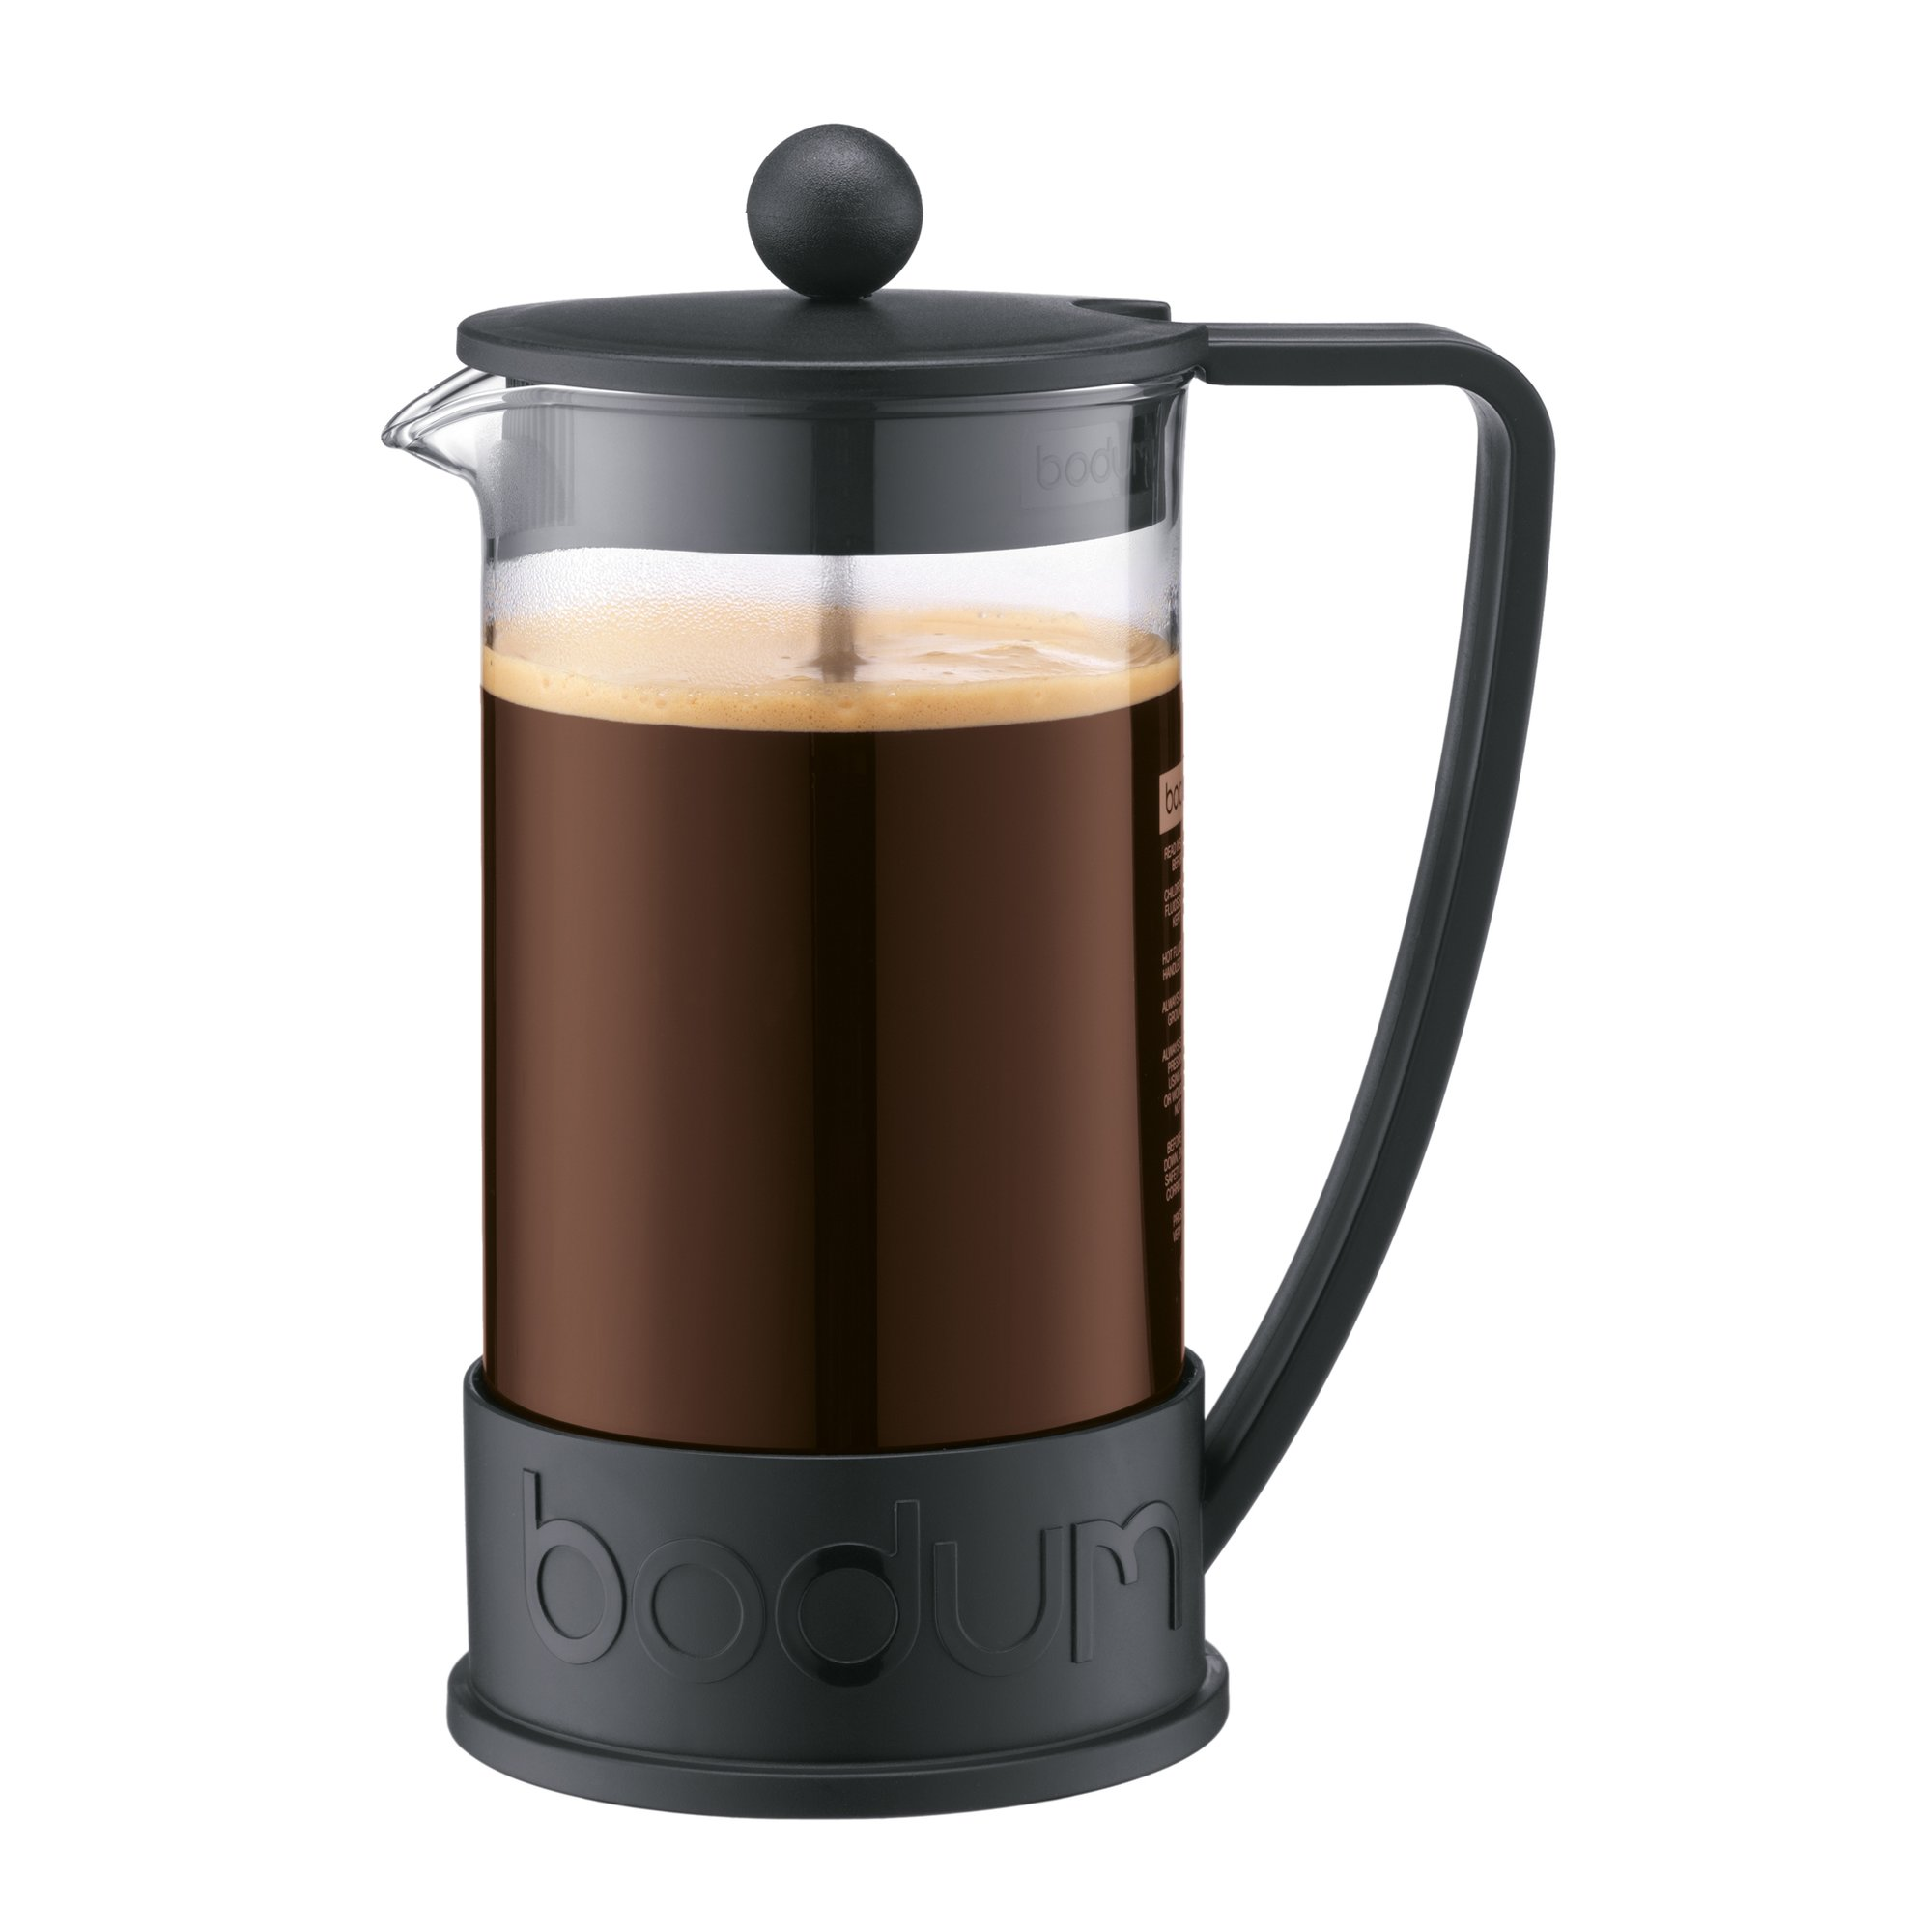 Bodum Coffee Press - Black